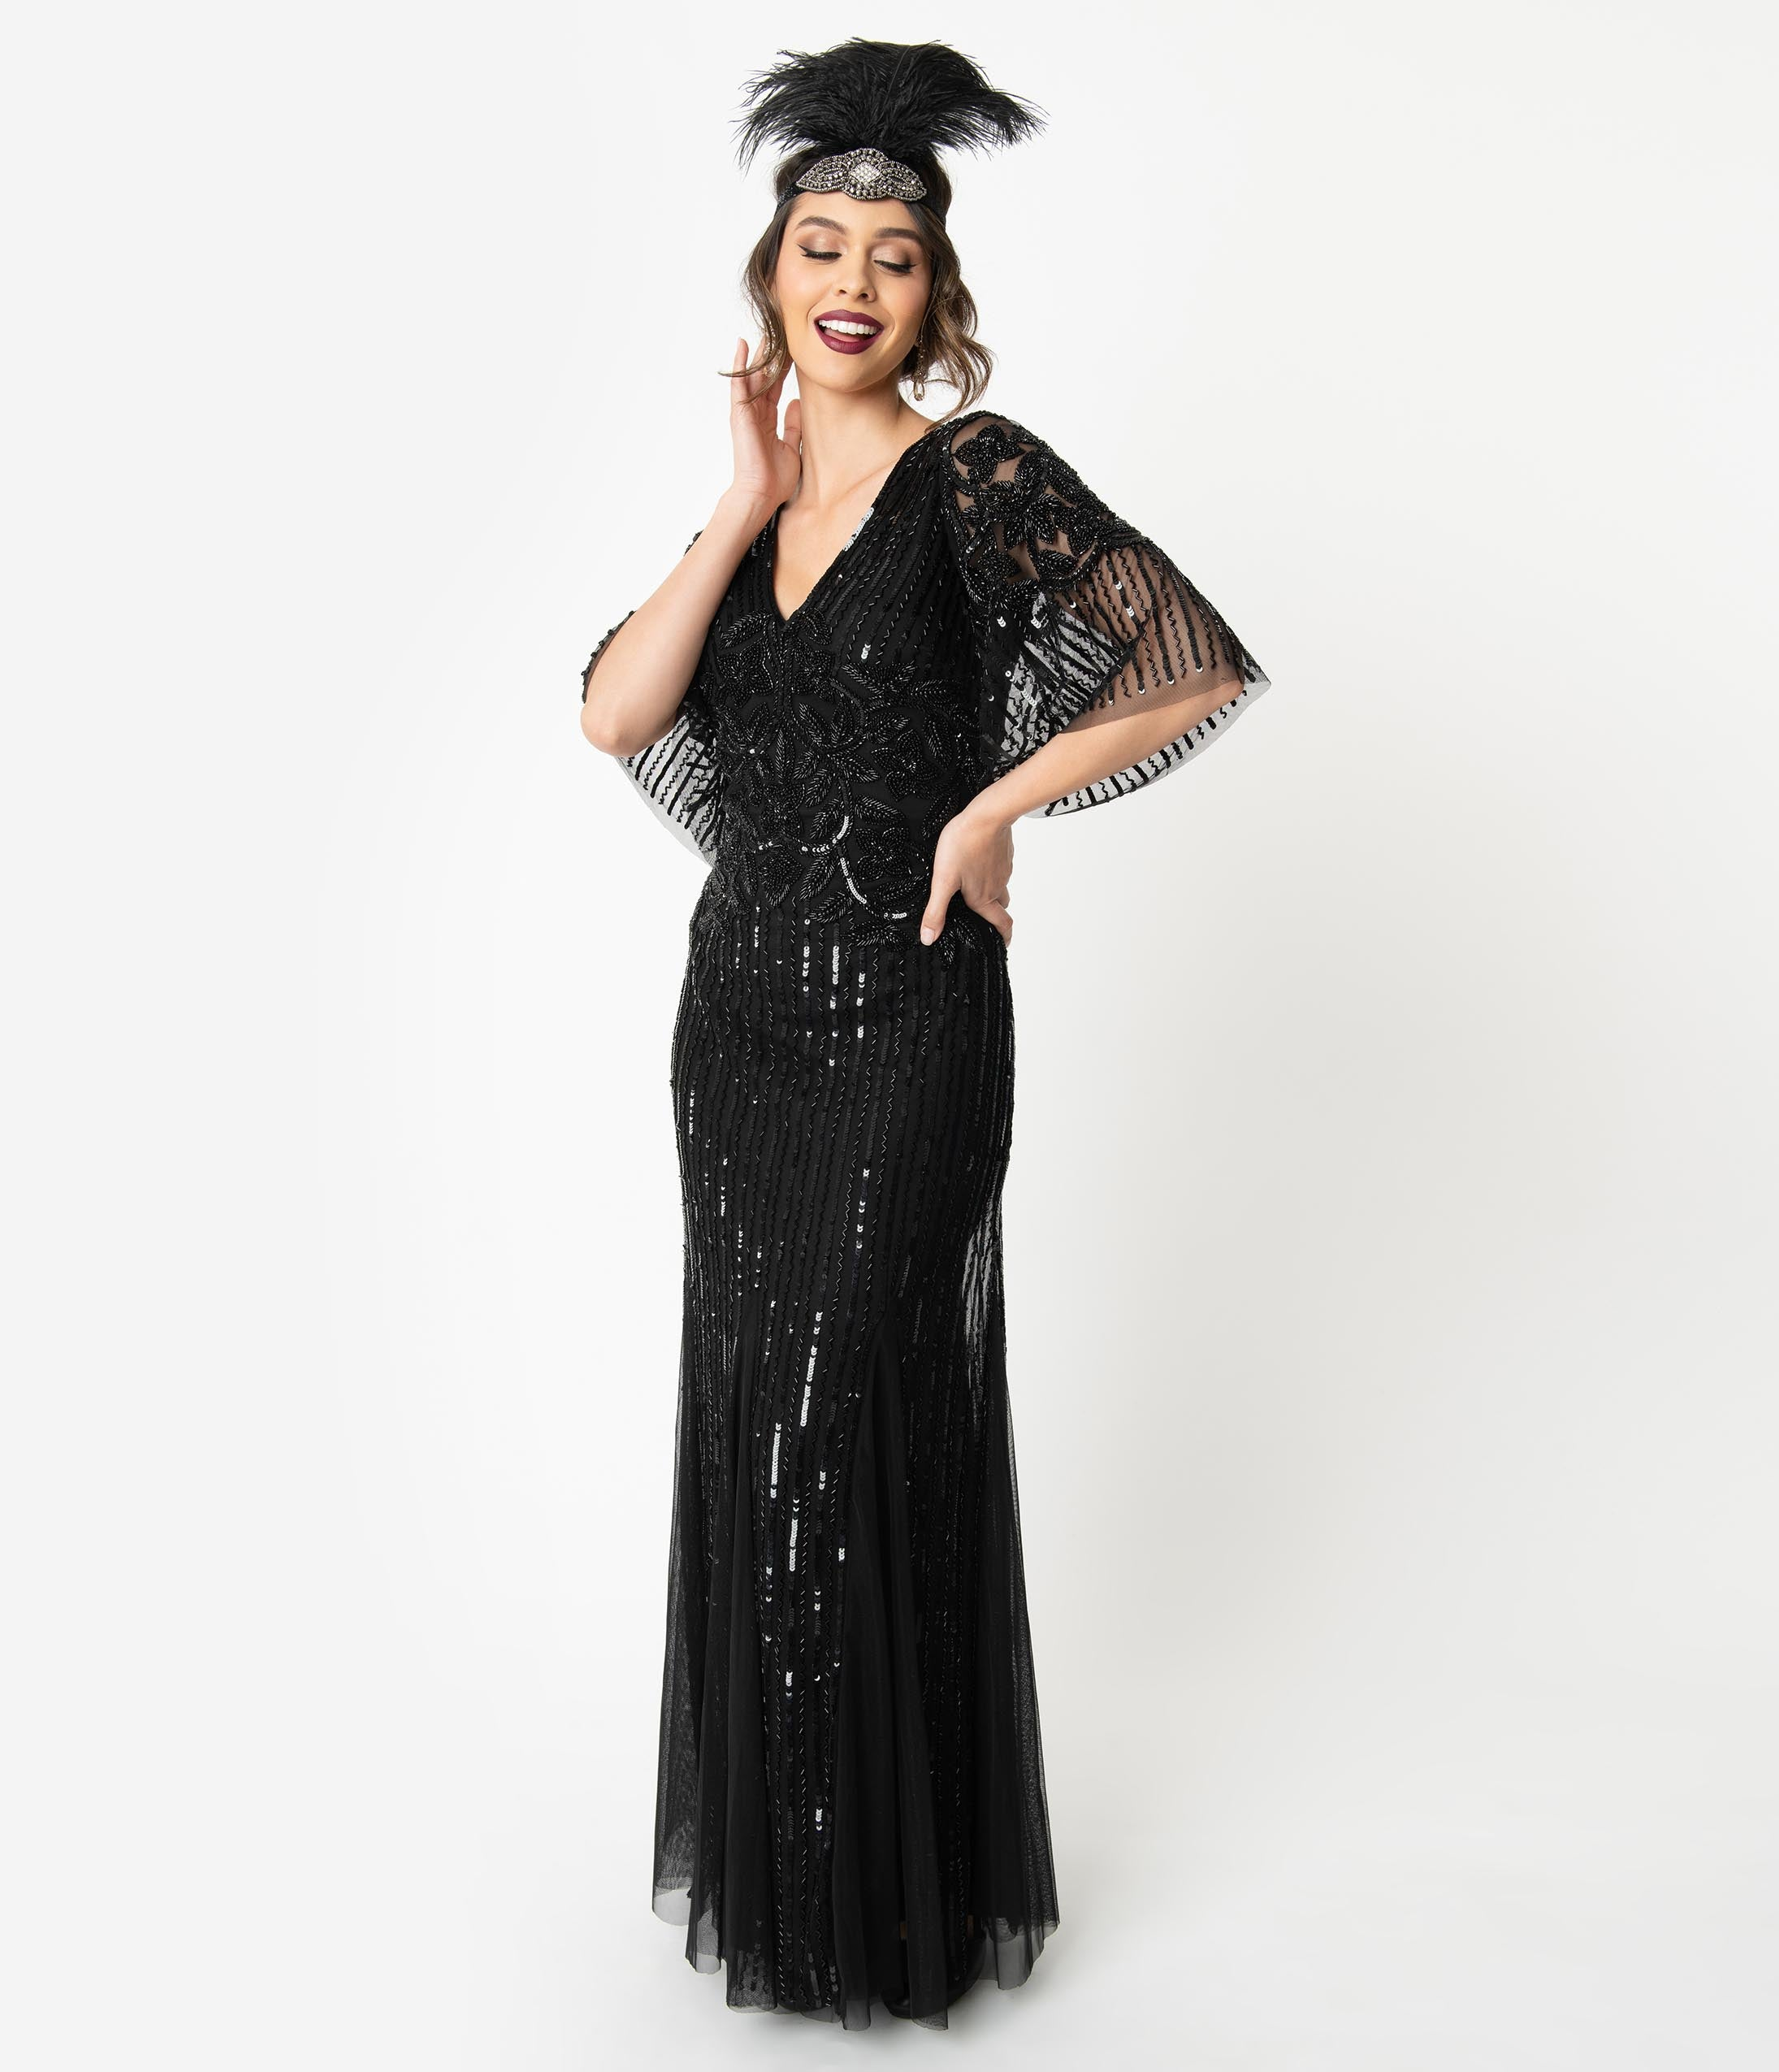 1920s Downton Abbey Dresses 1920S Style Black Beaded Sleeved Norma Flapper Gown $268.00 AT vintagedancer.com